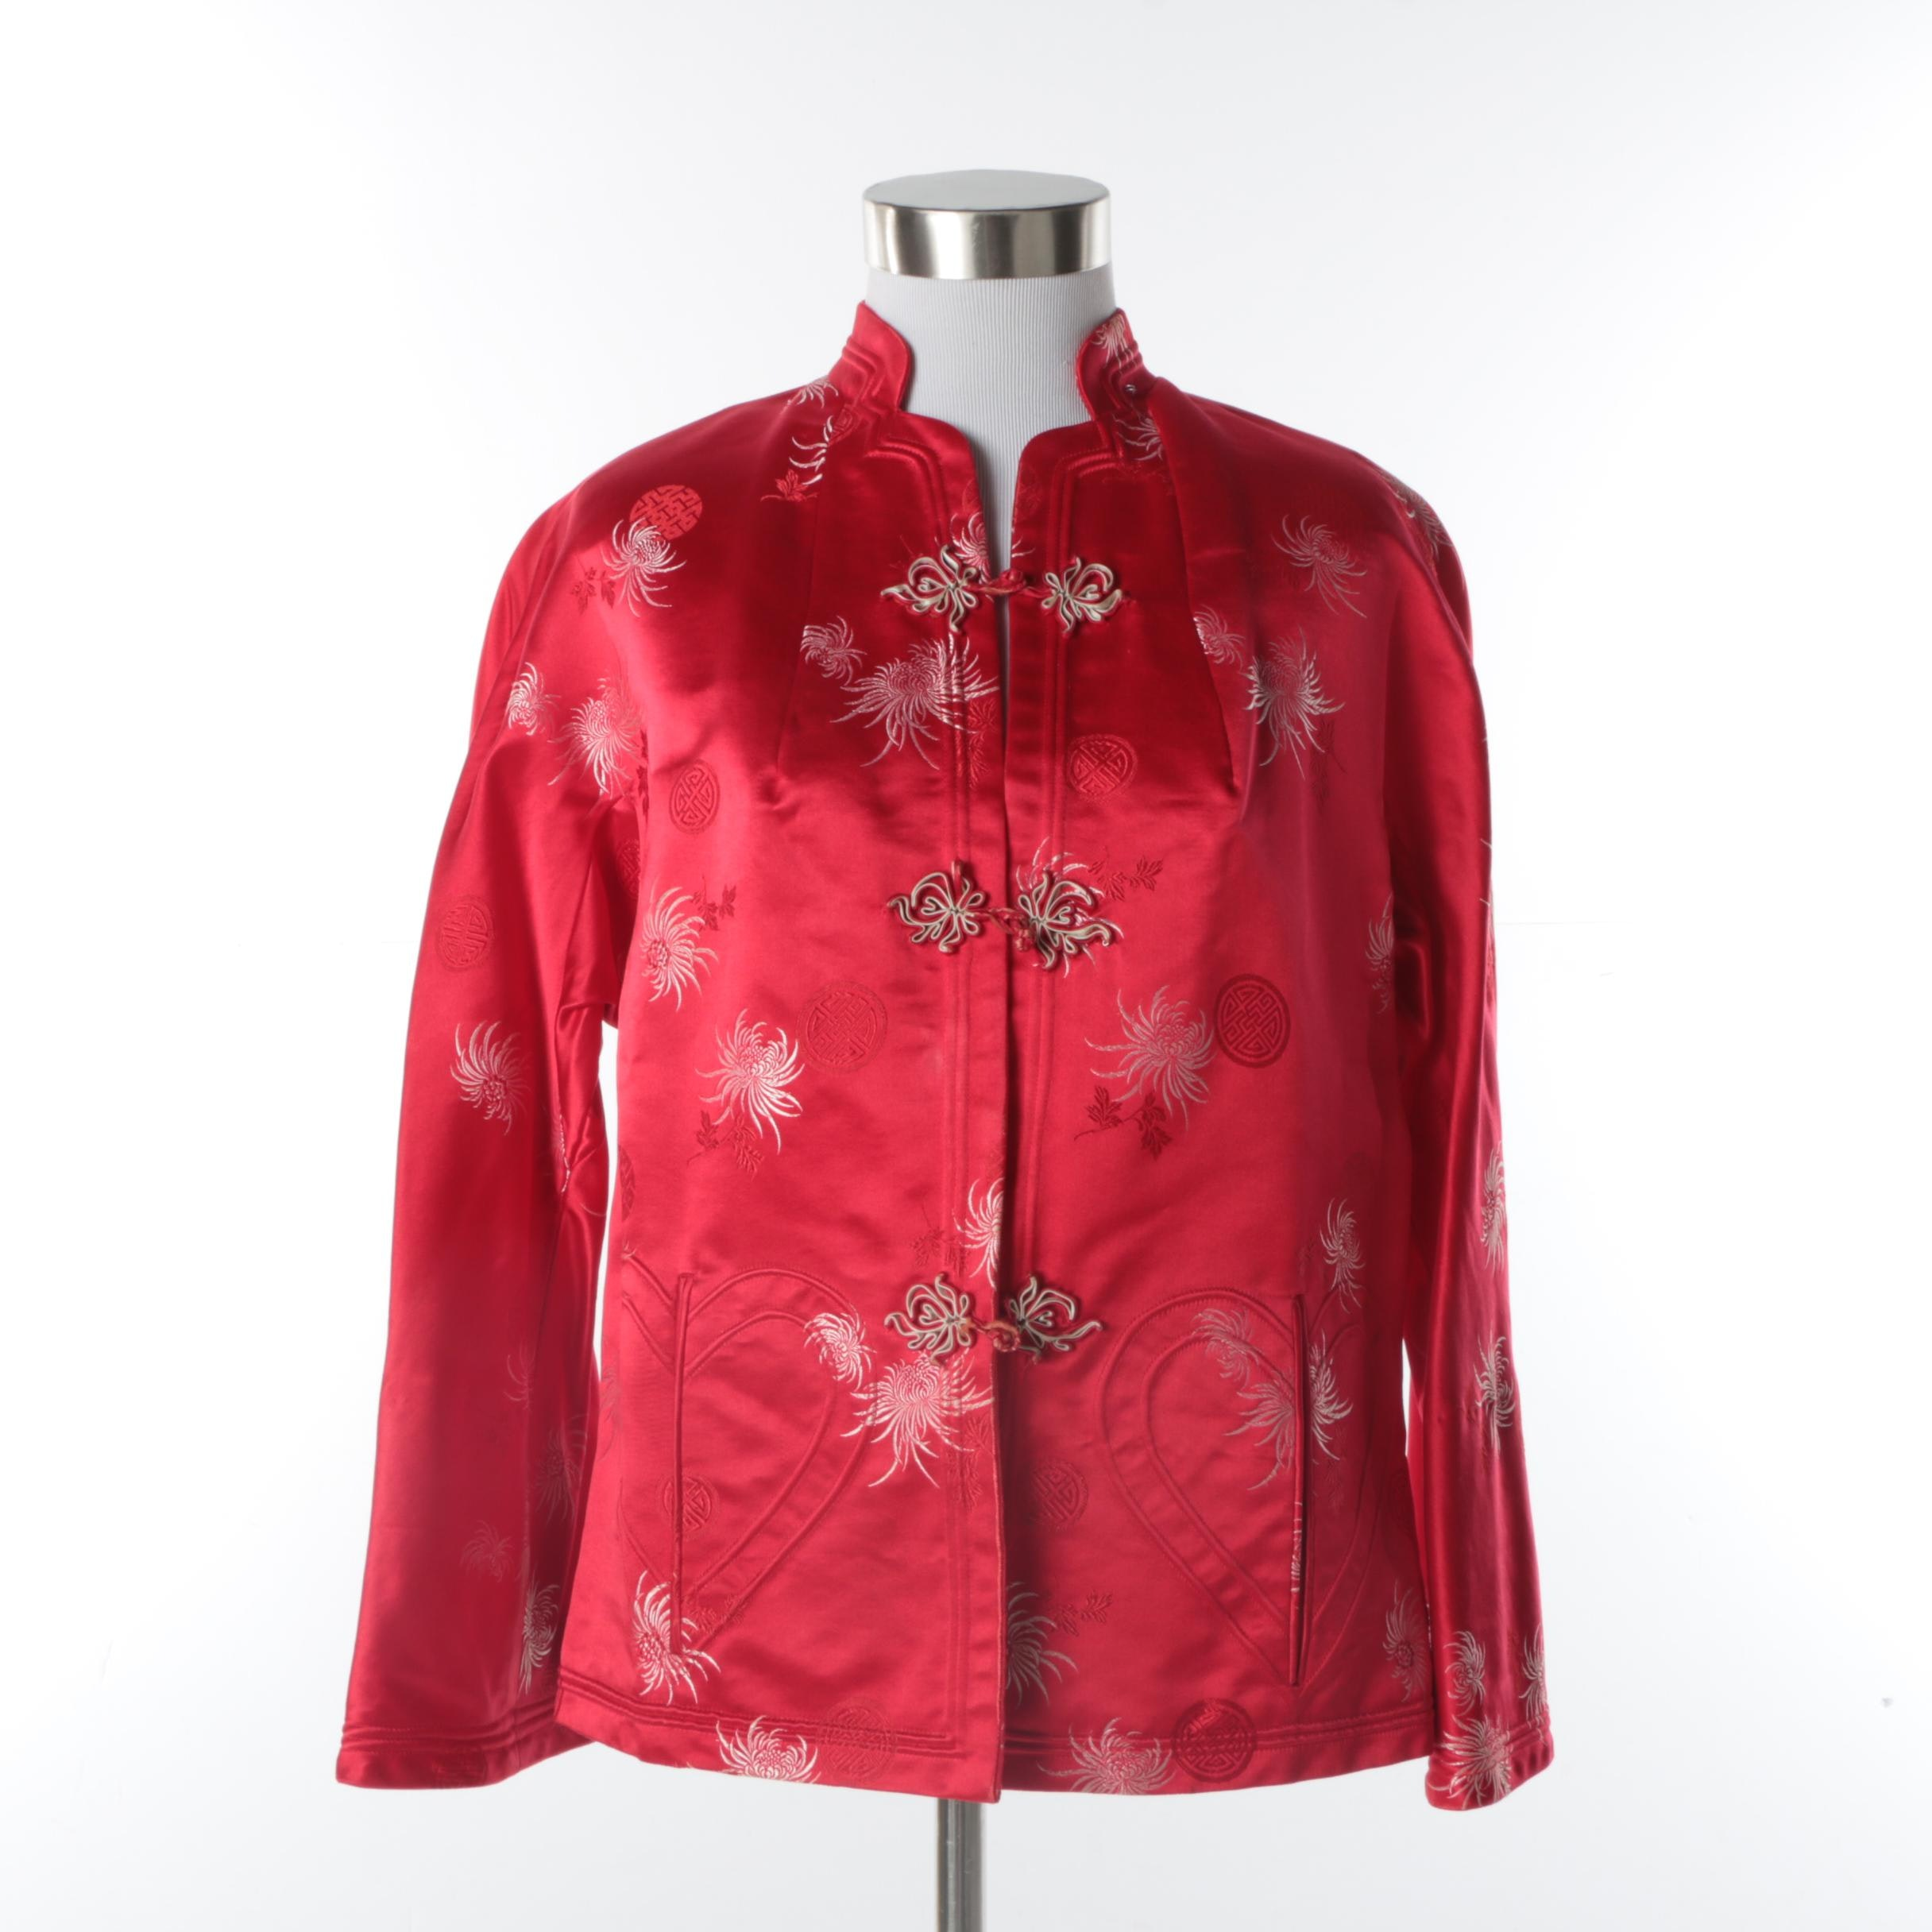 Women's Vintage Chinese Red Silk Jacket with Spider Chrysanthemum Motif